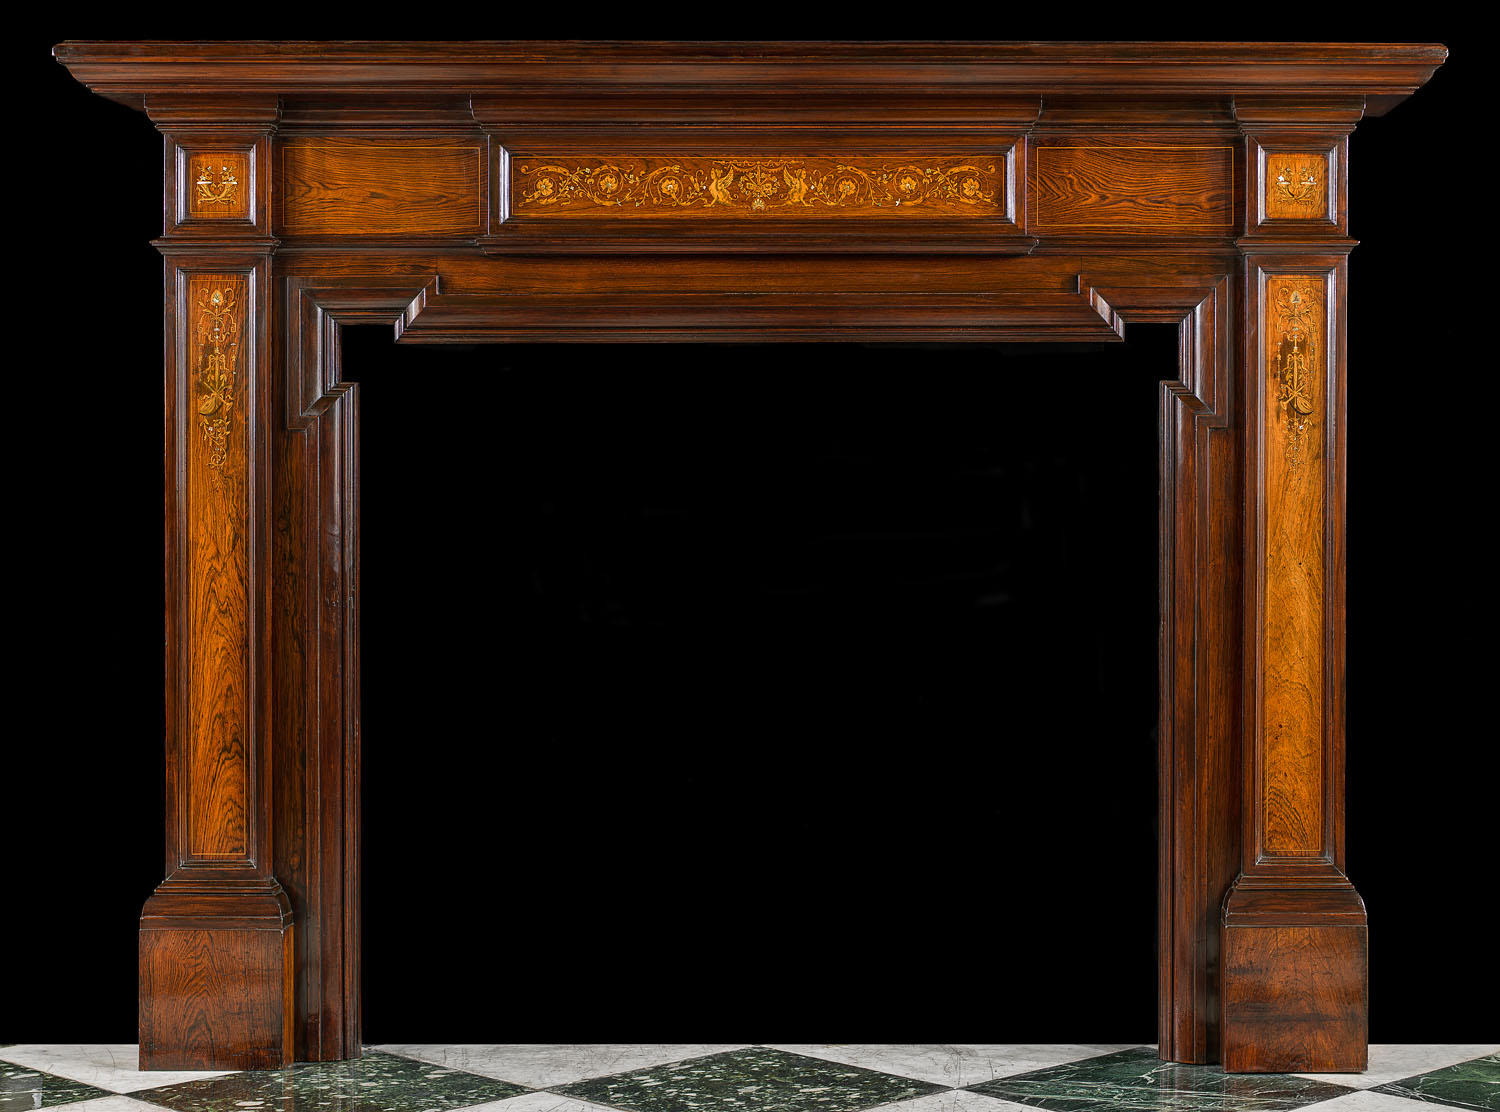 An antique Rosewood Edwardian fireplace surround